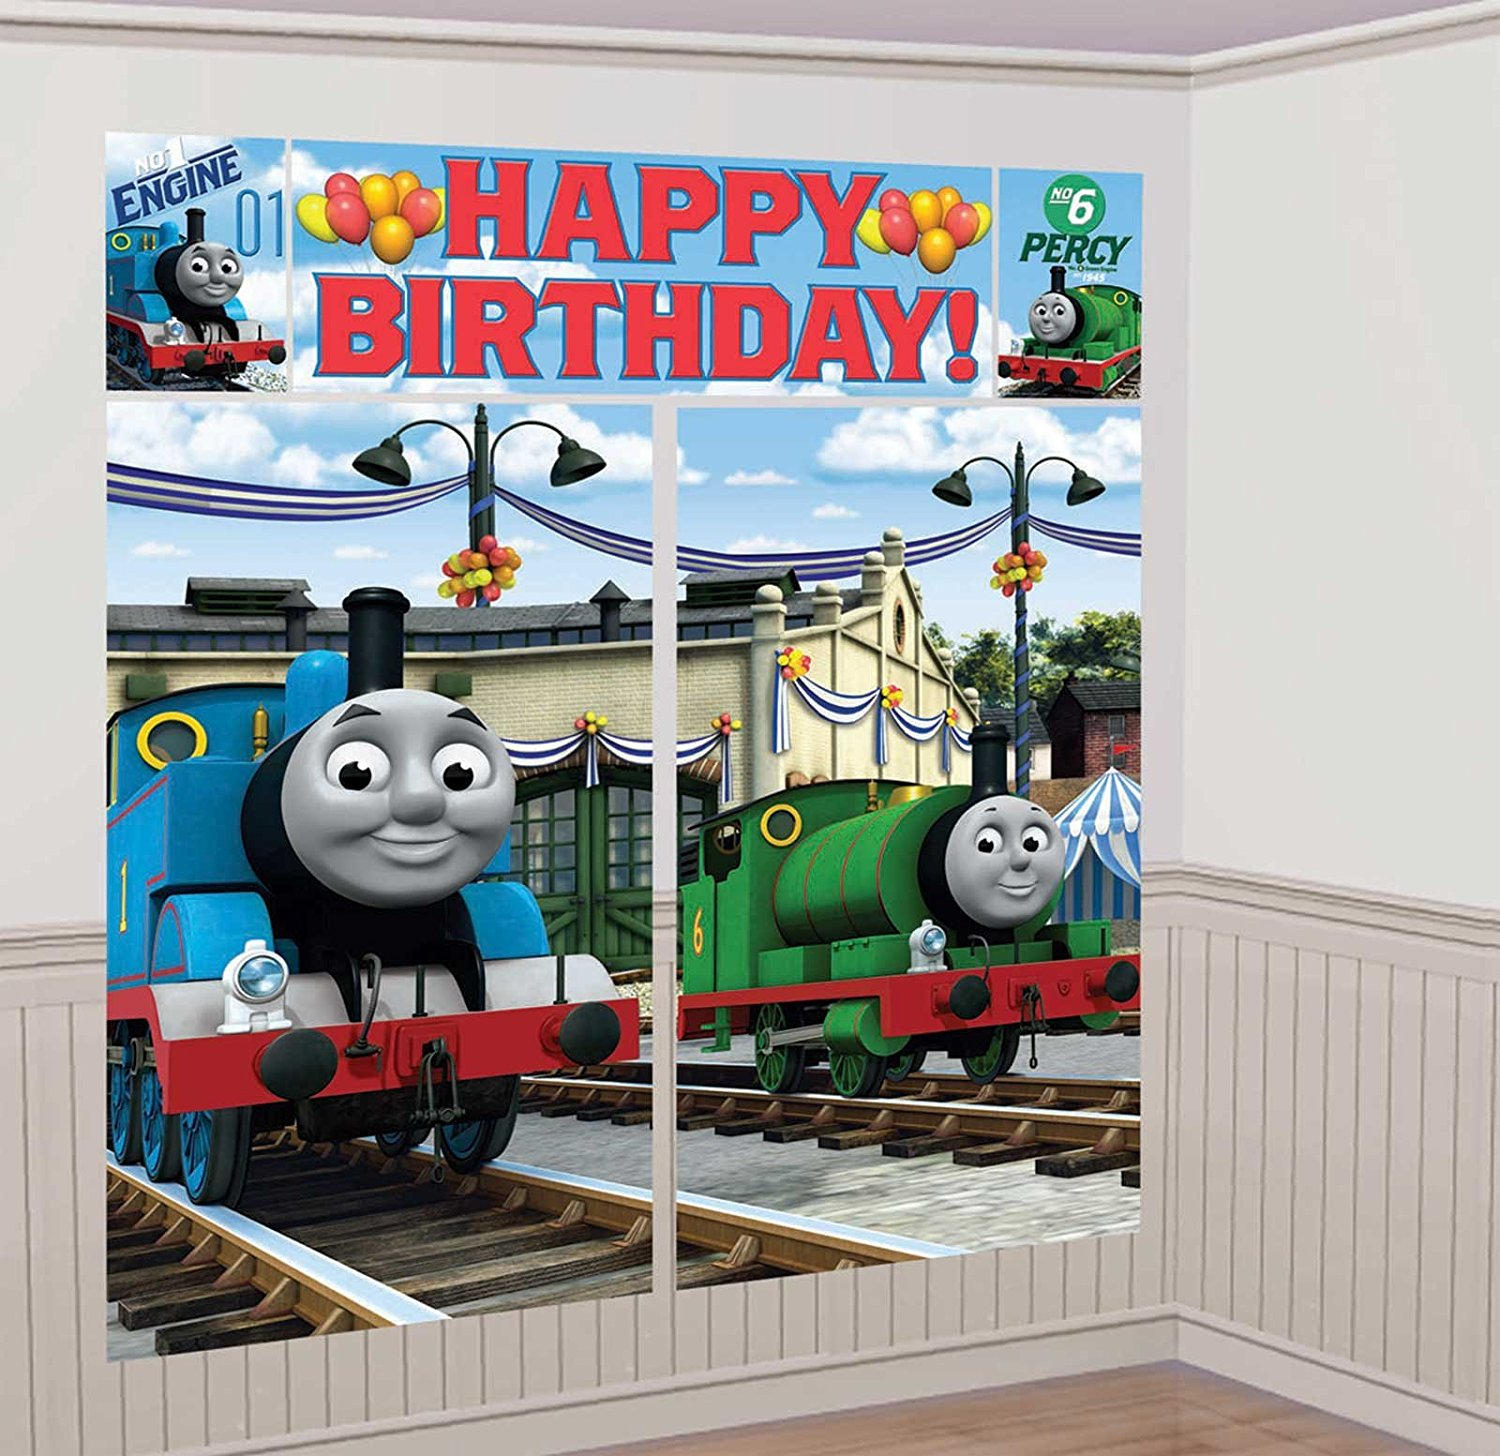 Thomas the Train Tank Engine ( ) Scene Setter Wall Decorations Kit - Kids Birthday and Party Supplies Decoration, 5 PIECES WALL DECORATION KITS By Thomas & Friends